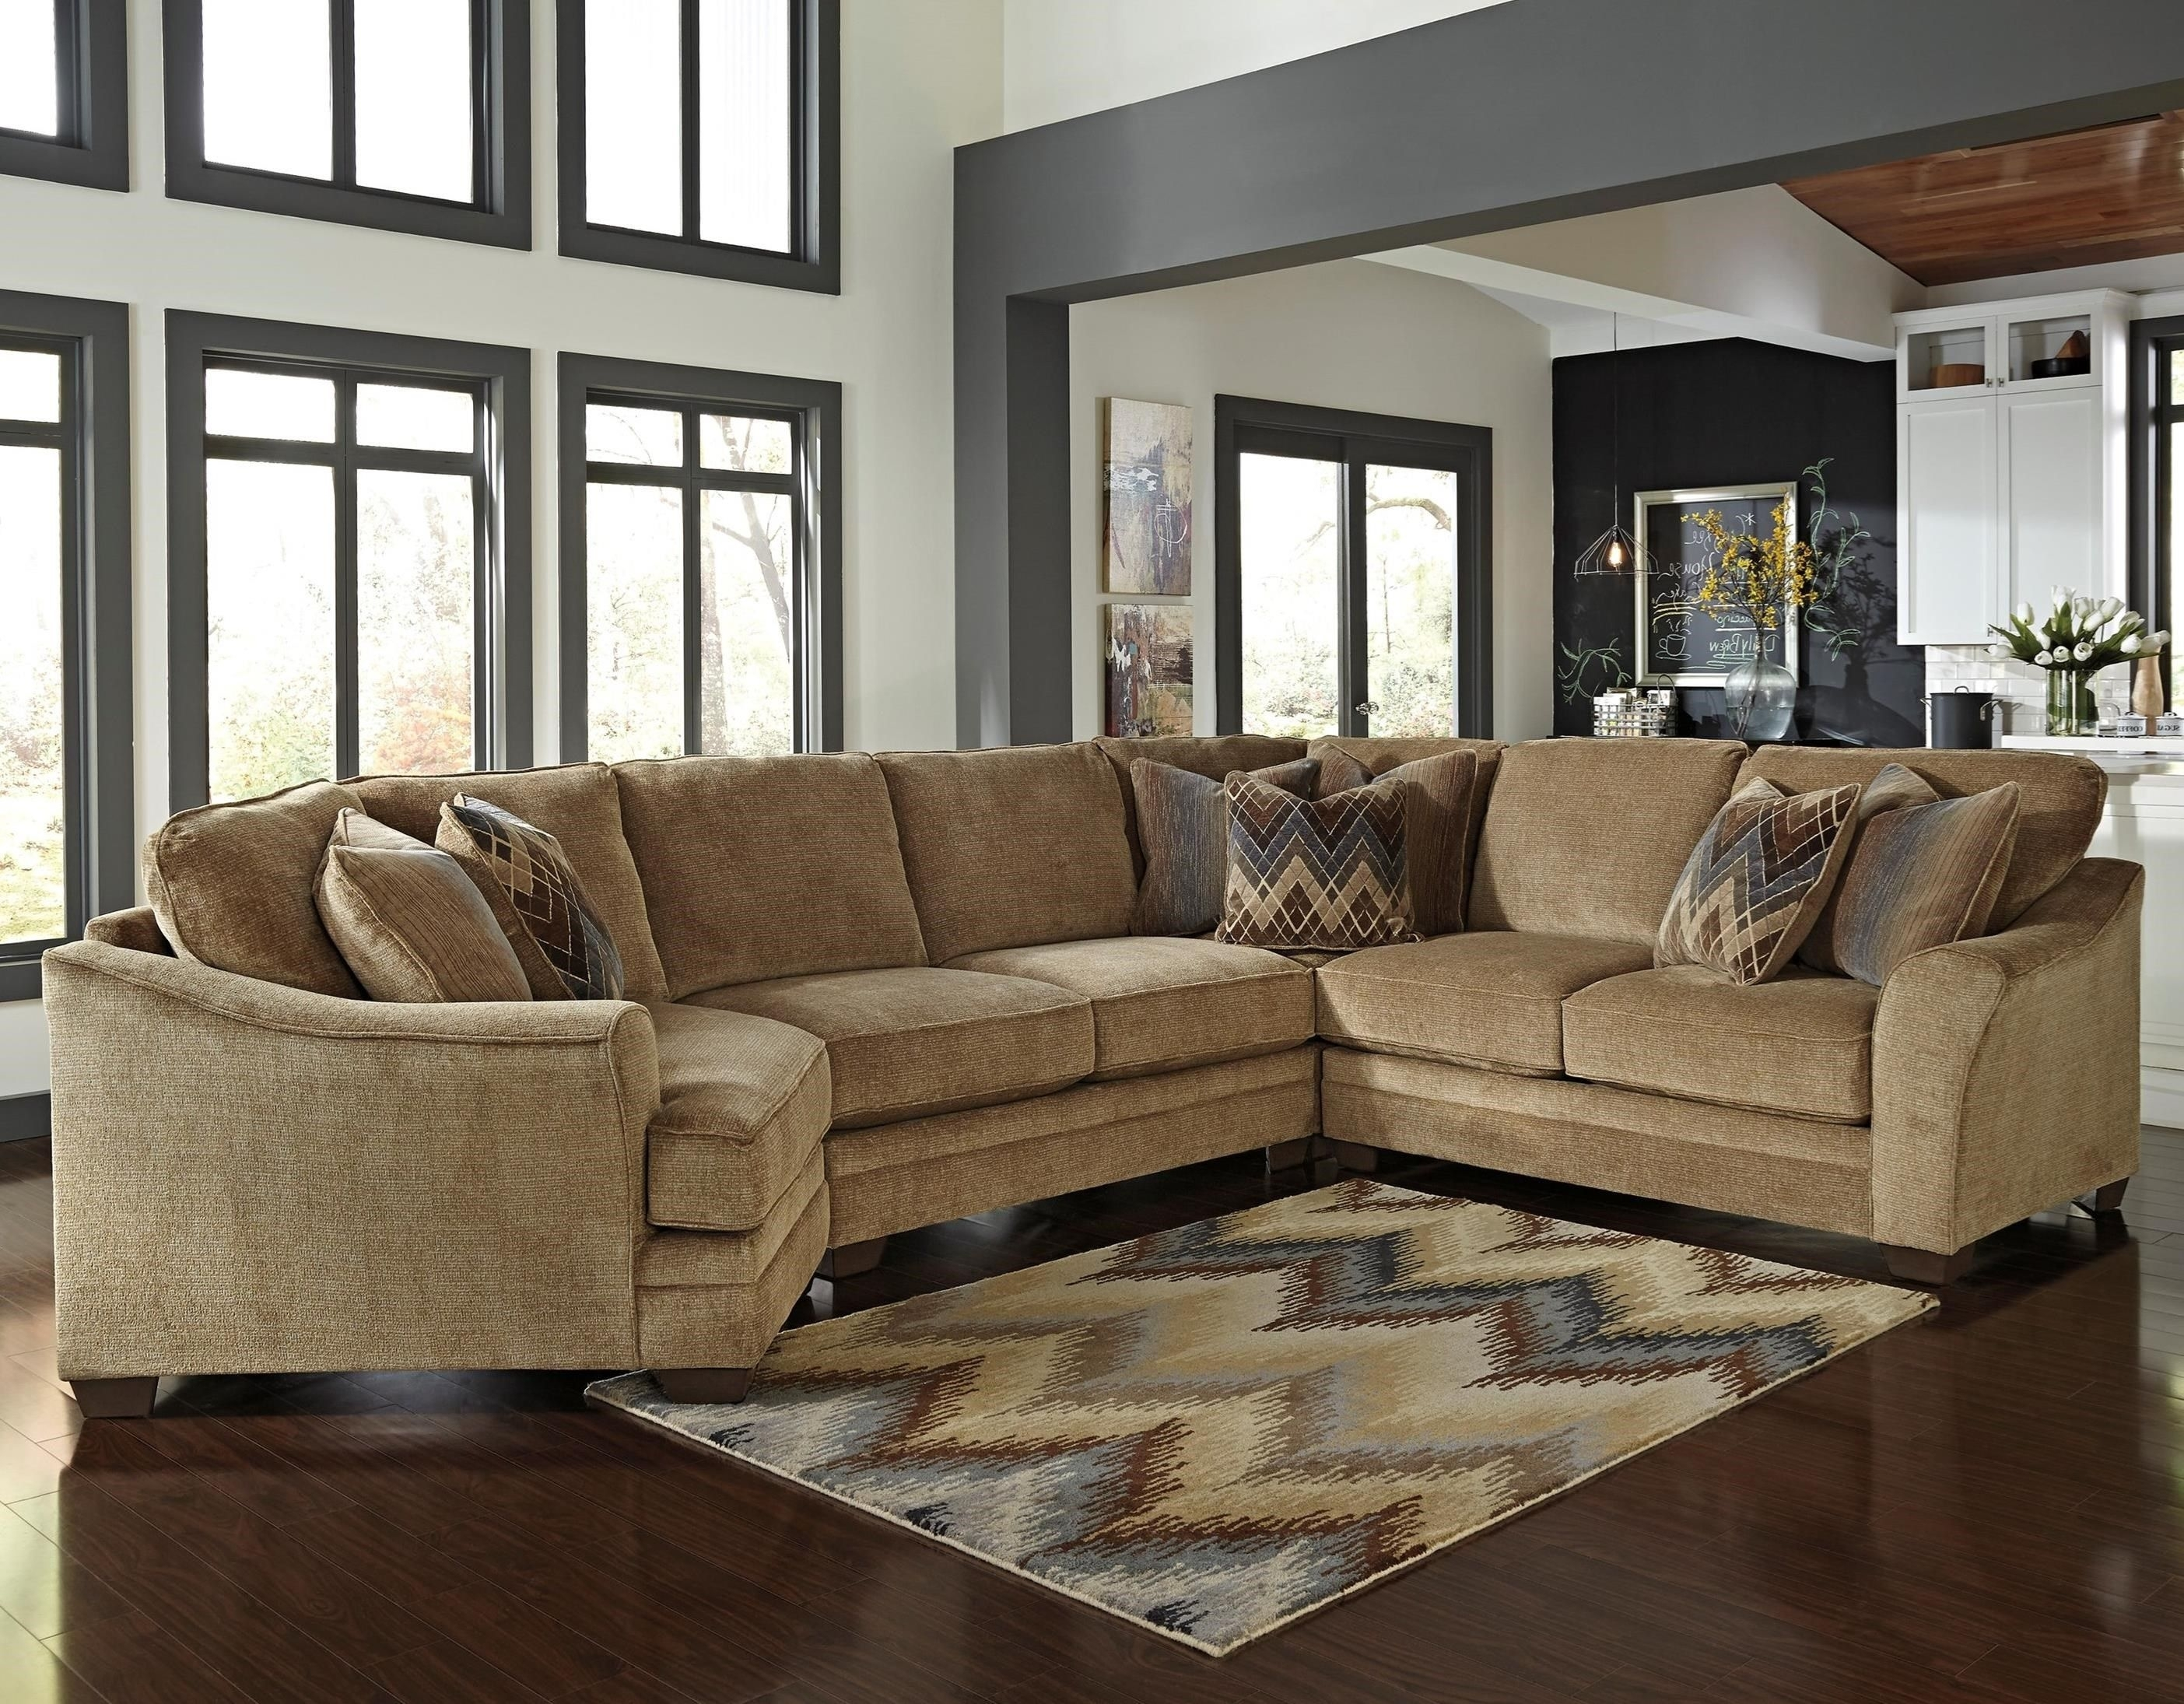 Pintammy Walter On Farmhouse Style | Pinterest | Farmhouse Style For Norfolk Chocolate 3 Piece Sectionals With Laf Chaise (Image 21 of 25)